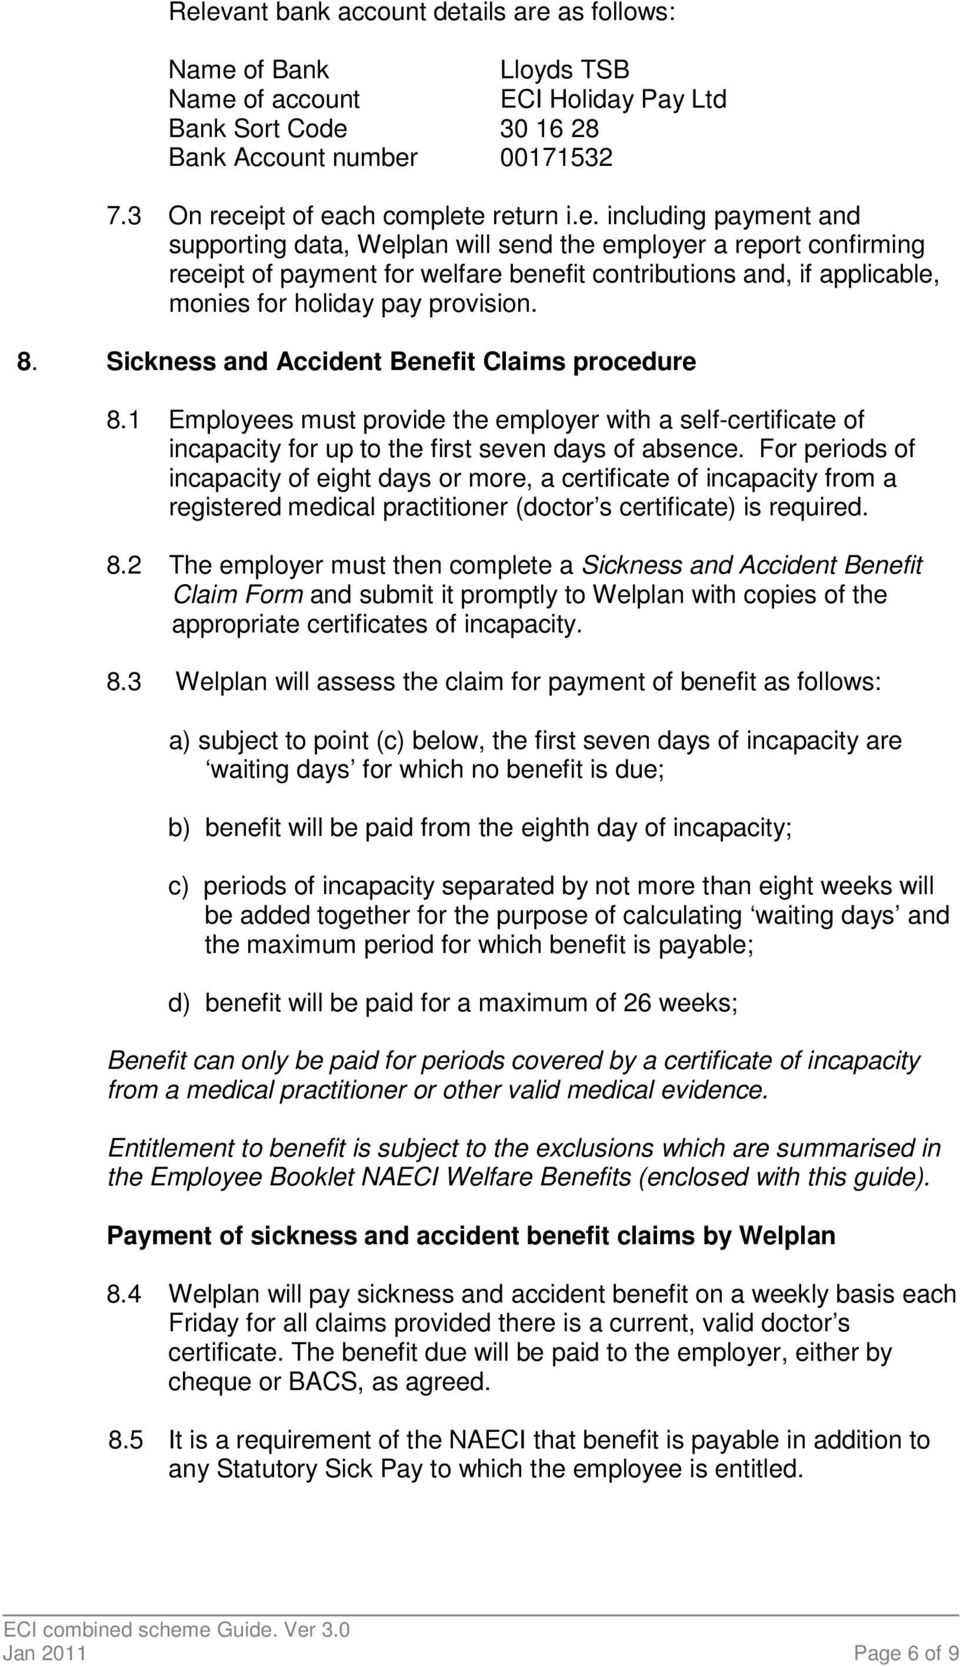 8. Sickness and Accident Benefit Claims procedure 8.1 Employees must provide the employer with a self-certificate of incapacity for up to the first seven days of absence.